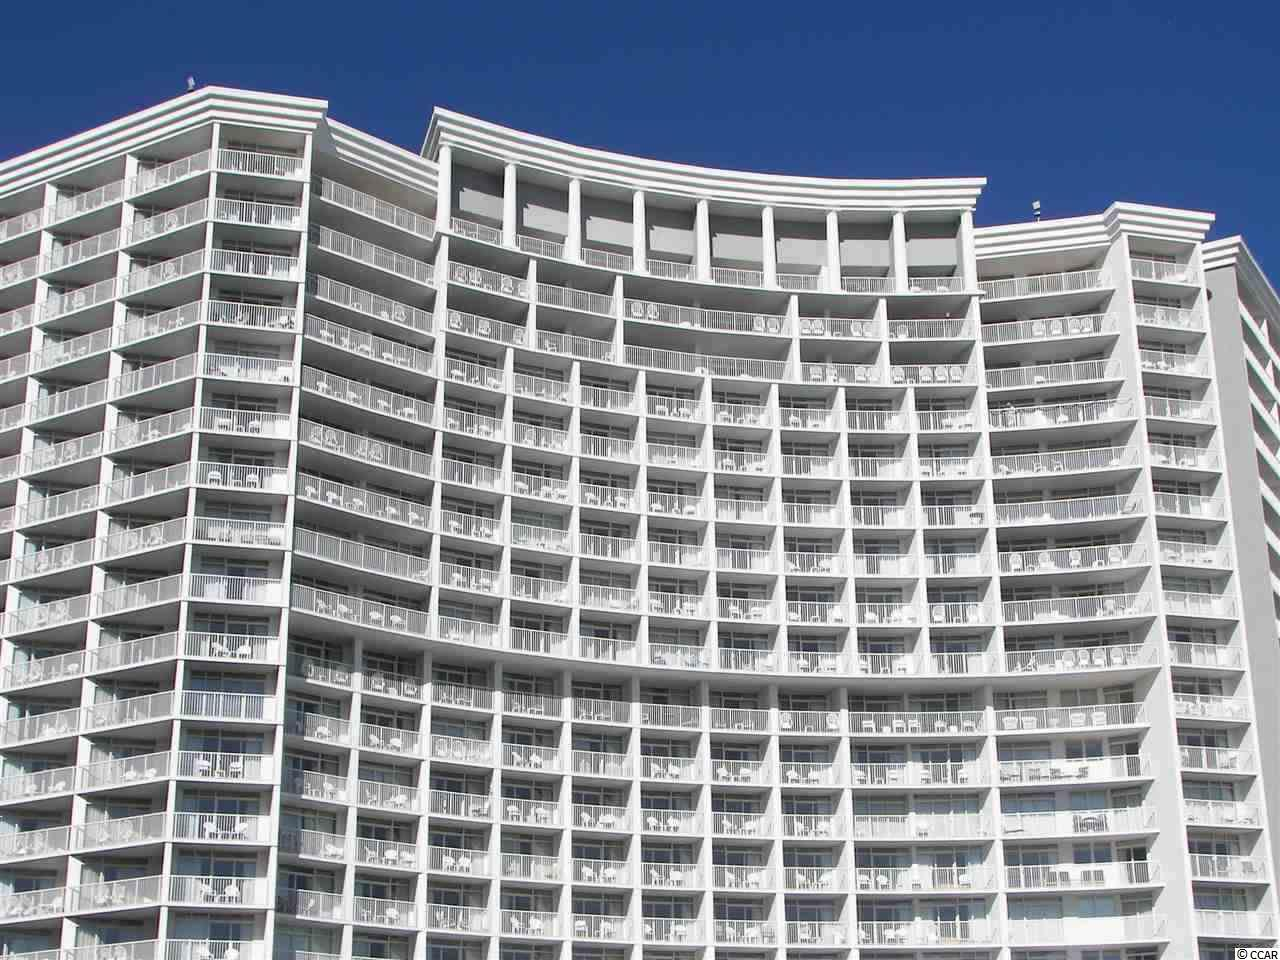 Located in the secluded Arcadian section of Myrtle Beach, Seawatch is surrounded by residential real estate.  This unit is on the 9th floor and is a 1 bedroom 1 full bath unit.  There are a multitude of amenities including on-site restaurant, heated indoor pools, whirlpools, outdoor pools, lazy rivers, and fitness center.  Everything you need is right here.  New HVAC installed 2019.  Unit has new stove, new flooring, new matresses (current pictures don't reflect new stov or flooring).  Installed 2021.   Seawatch is conveniently located close to shopping, dining, golf, entertainment, and all area attractions.